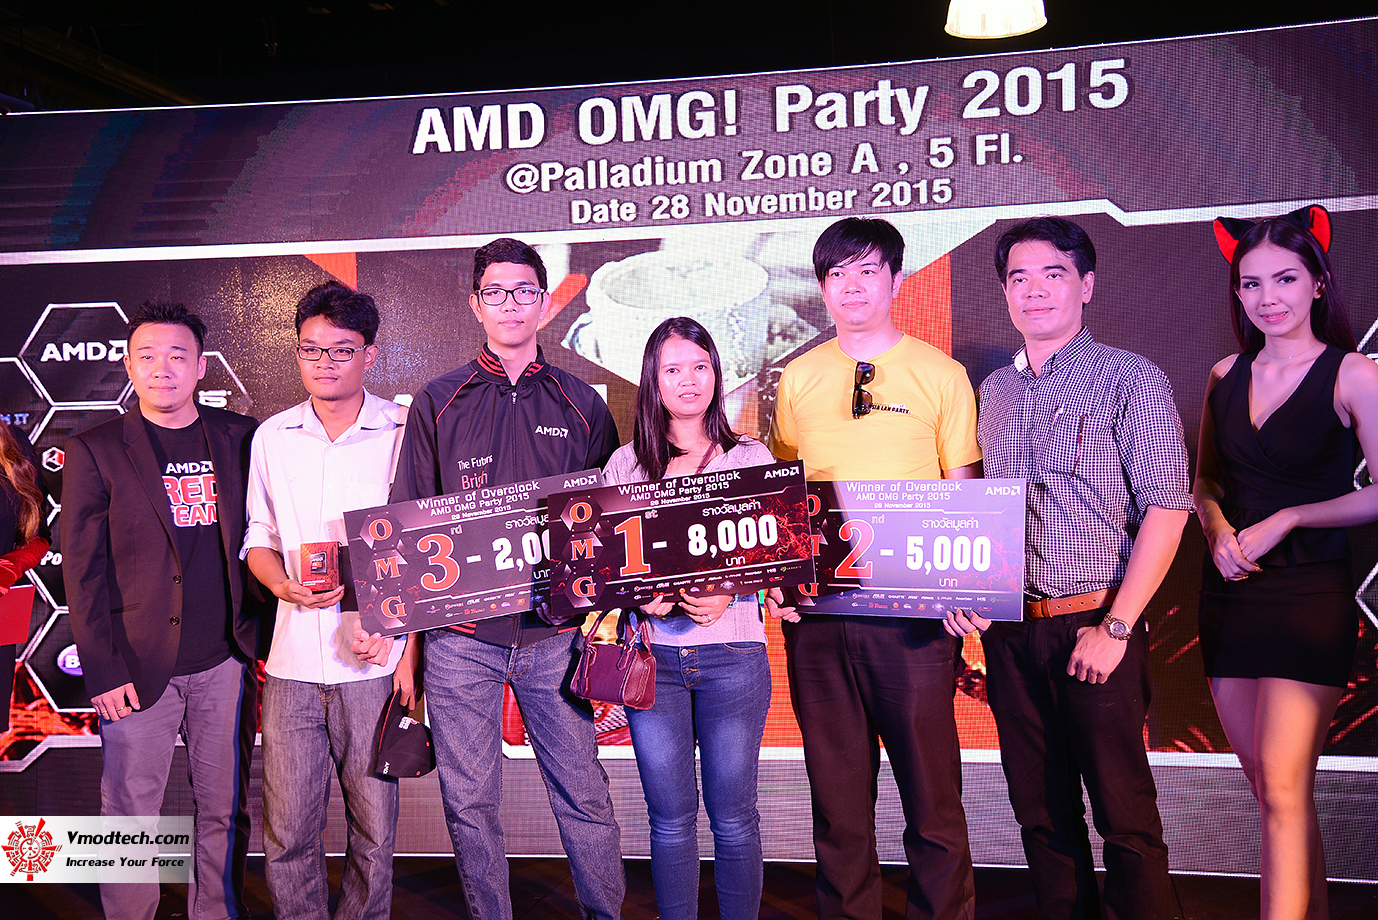 dsc 7942 AMD OMG! Party 2015 (AMD Overclock Modding Gaming Party 2015)